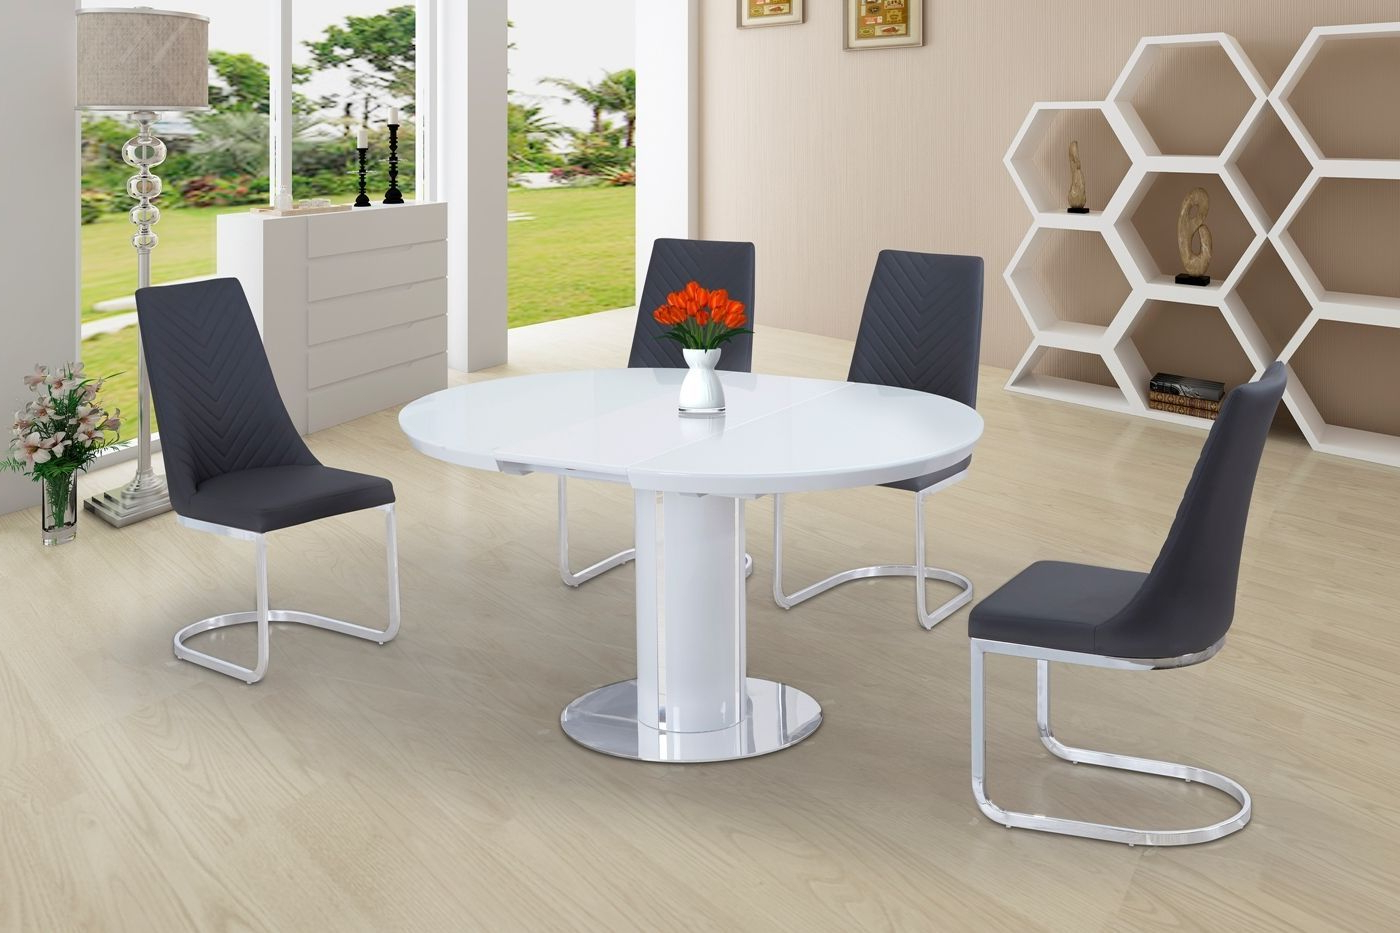 Best And Newest Eclipse Dining Tables Regarding Eclipse Round / Oval Gloss & Glass Extending 110 To 145 Cm Dining Table –  White (View 6 of 25)